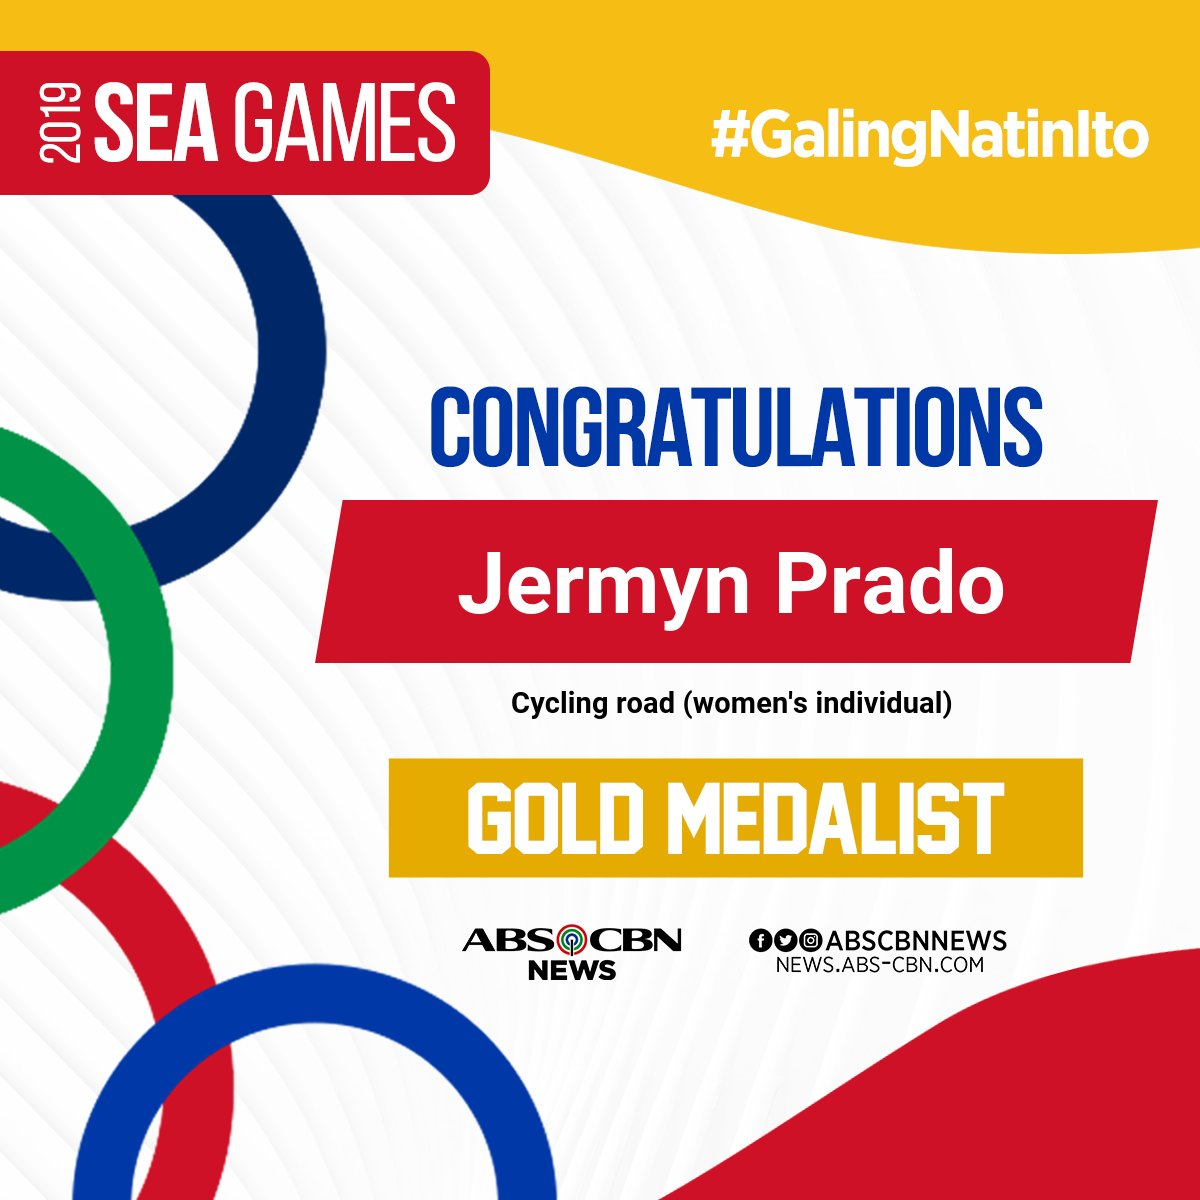 test Twitter Media - PANALO TAYO! 🏅 Jermyn Prado adds another gold to the Philippine medal haul after dominating the cycling road (women's individual time trial). #SEAGames2019 #GalingNatinIto   For updates on the 30th SEA Games, visit https://t.co/a8a0MBtuMJ https://t.co/wLqTkV5xxe